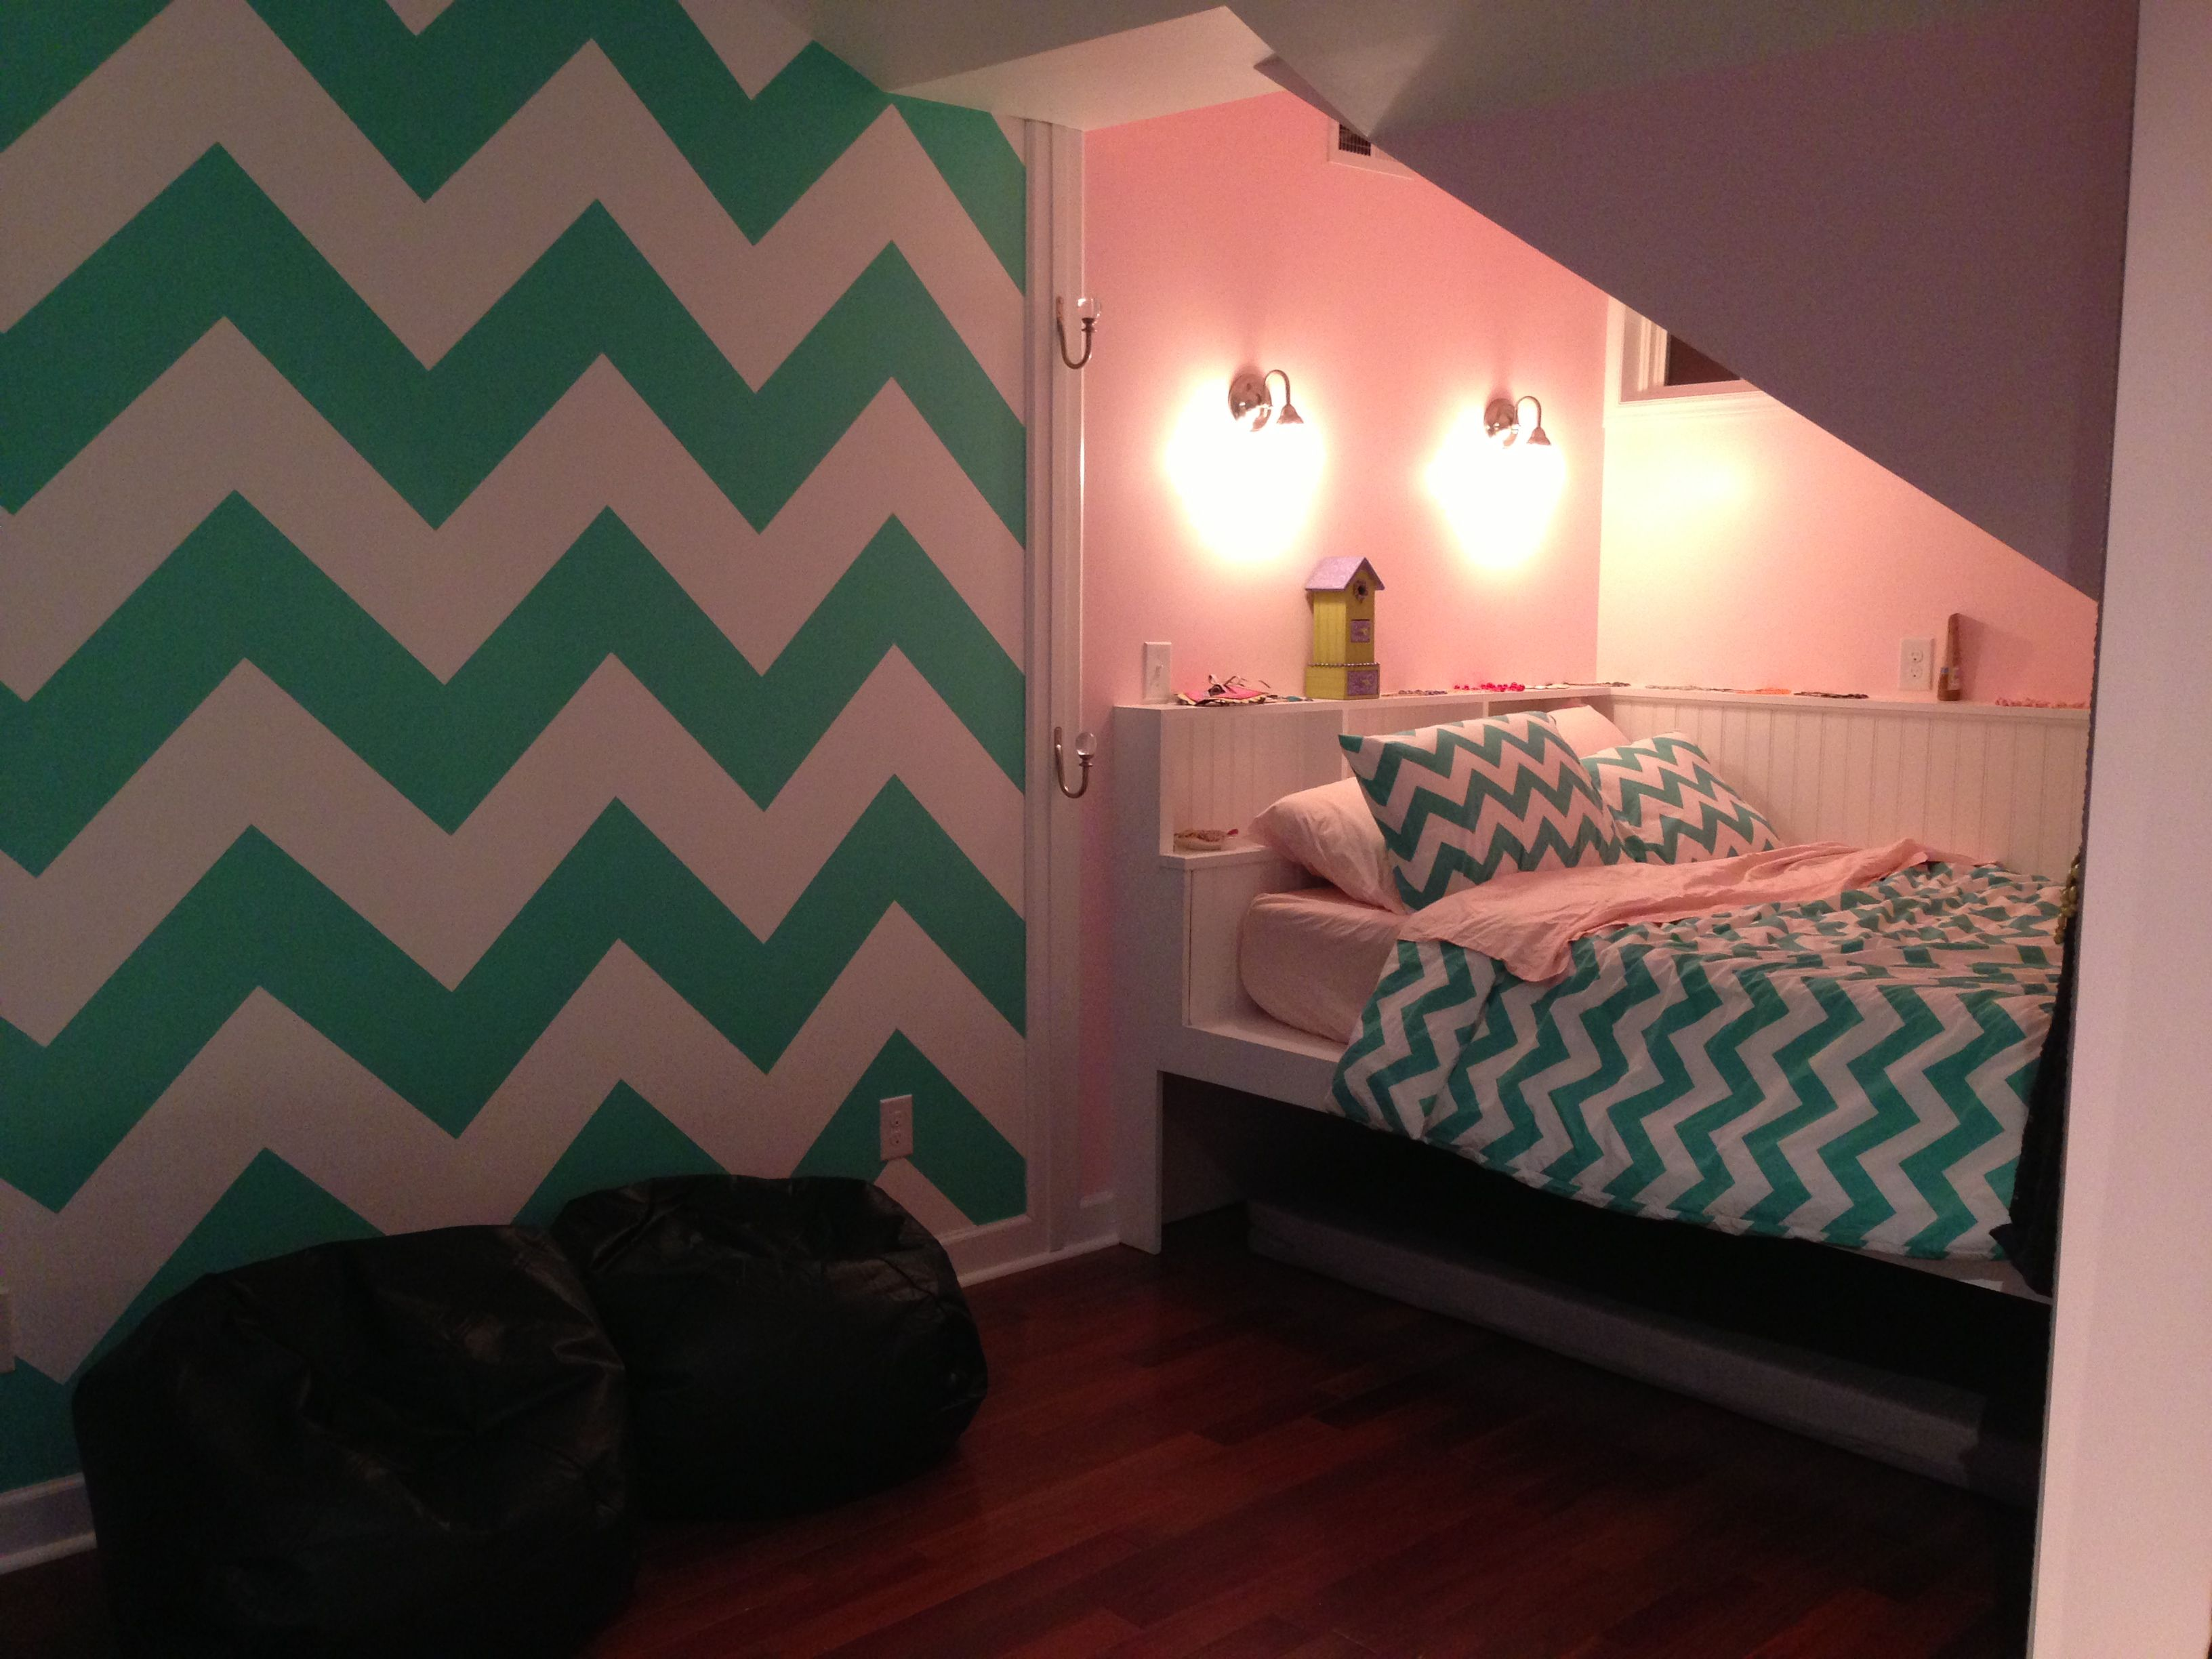 Teenagers Room Paint Ideas Chevron Painted Wall In Teen Room Girl Room Ideas